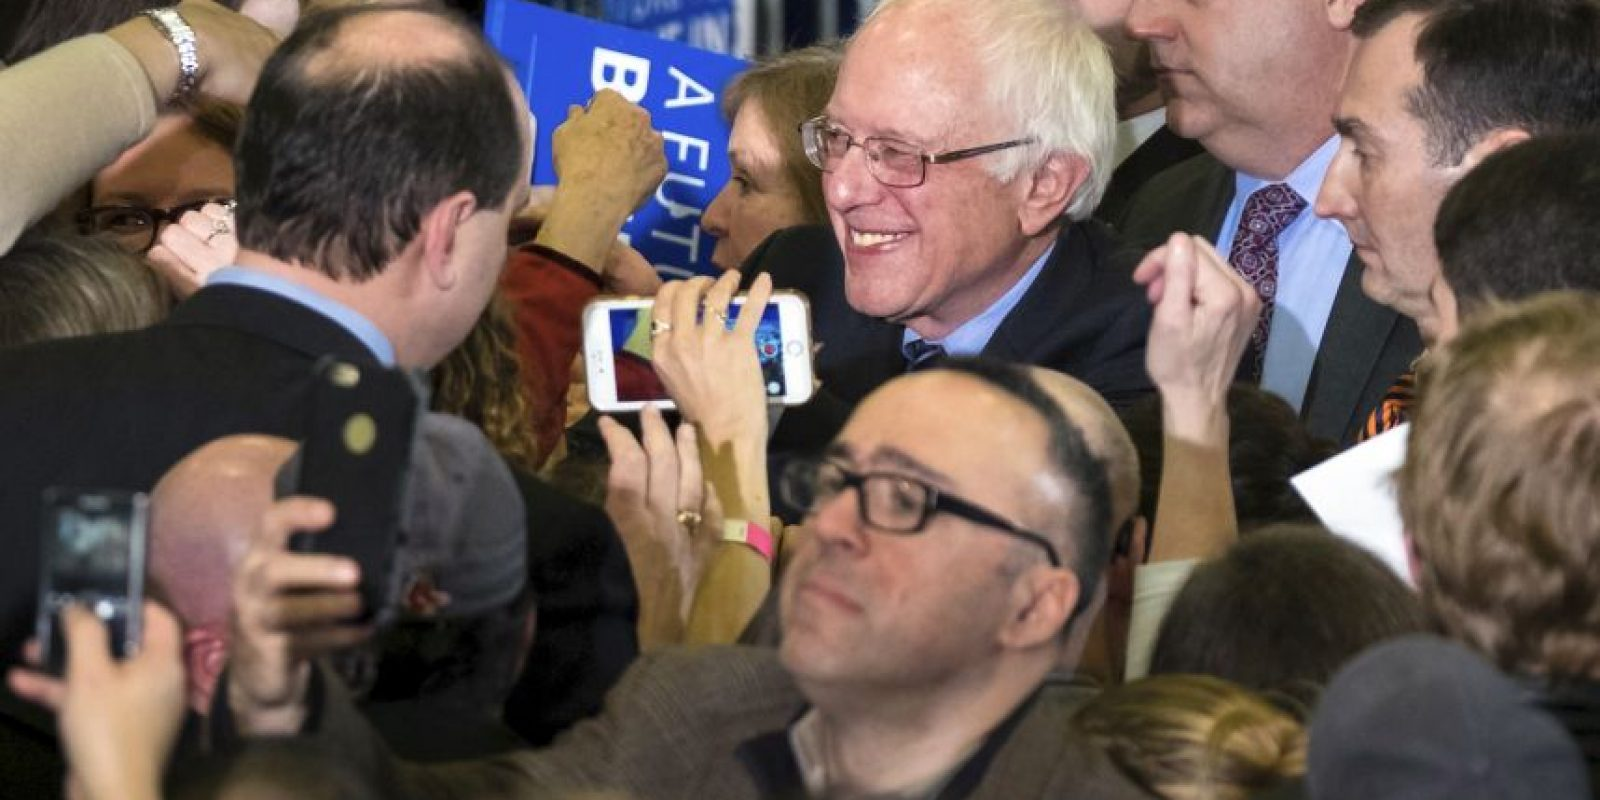 Trump y Sanders, los favoritos en New Hampshire Foto: AP